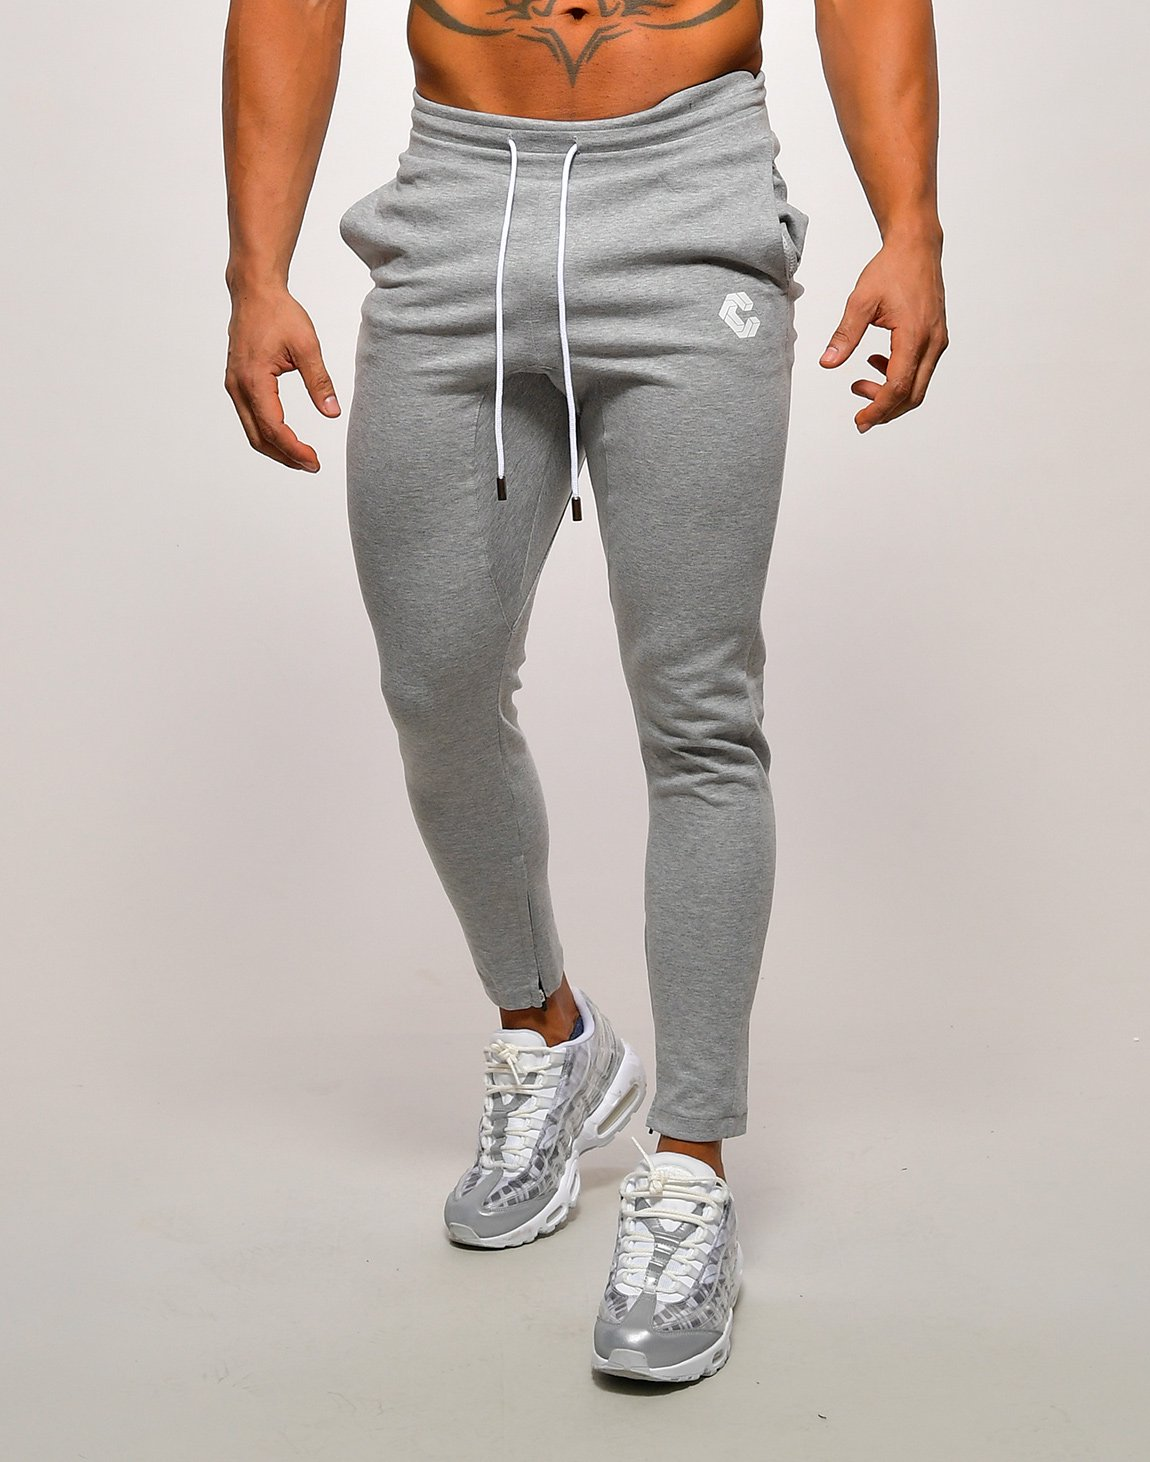 <img class='new_mark_img1' src='https://img.shop-pro.jp/img/new/icons1.gif' style='border:none;display:inline;margin:0px;padding:0px;width:auto;' />CRONOS SIDE FONT PANTS【T.GRAY】